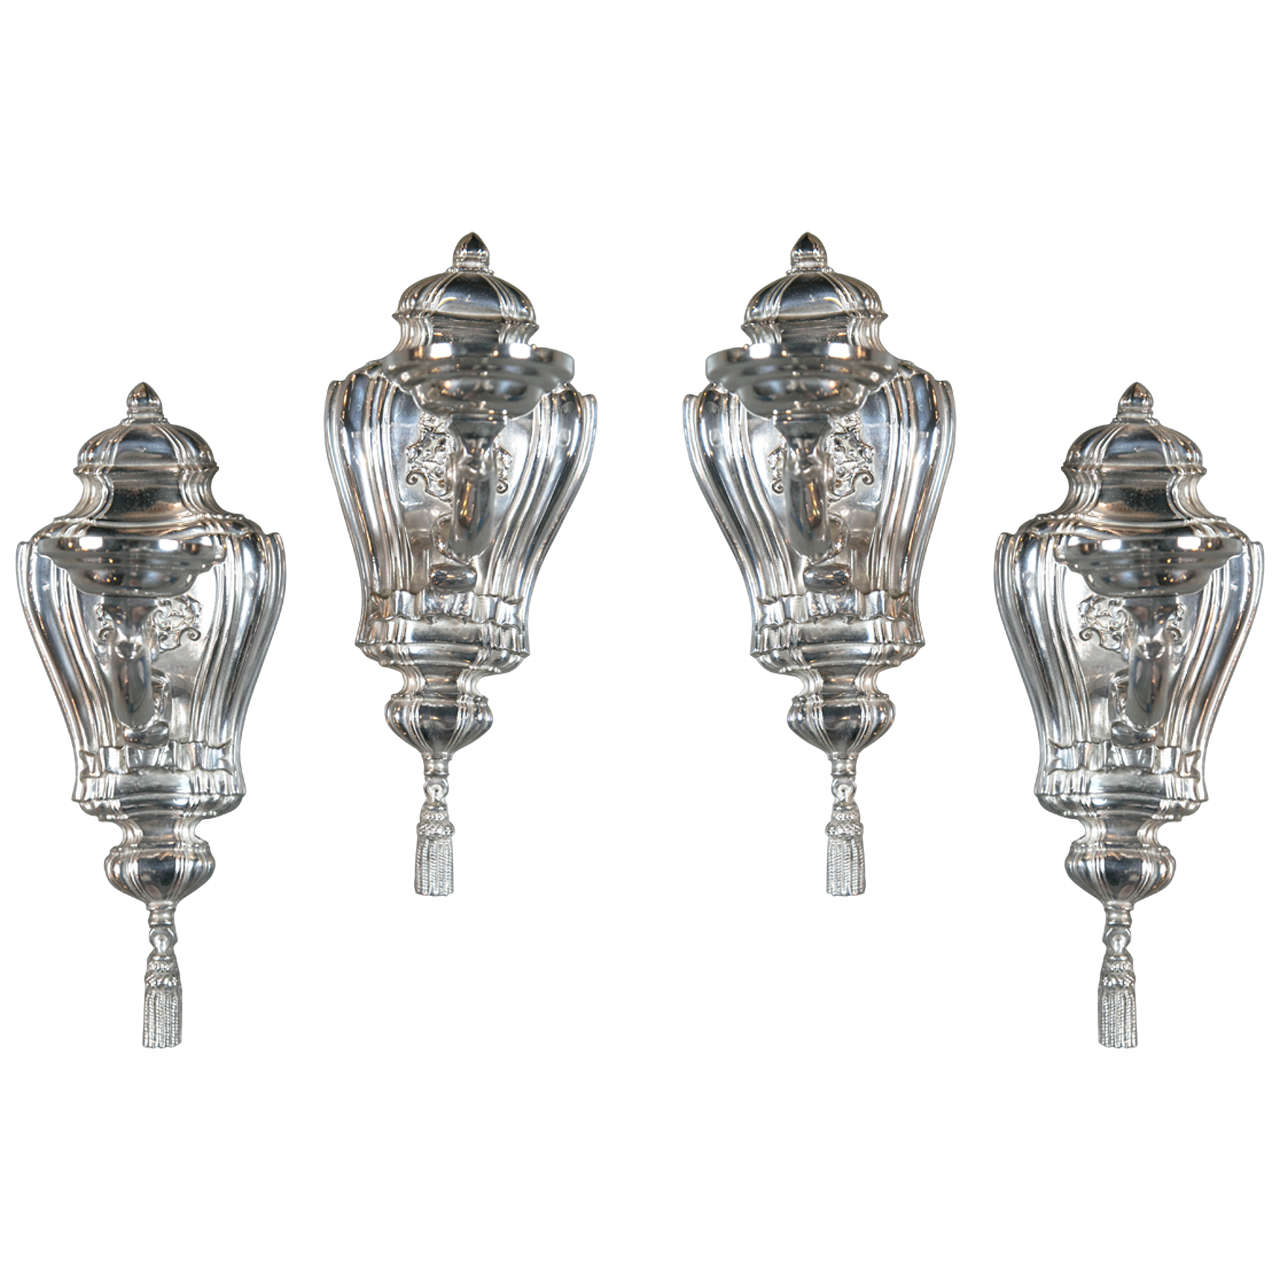 Pair of circa 1920s Caldwell One-Light Sconces